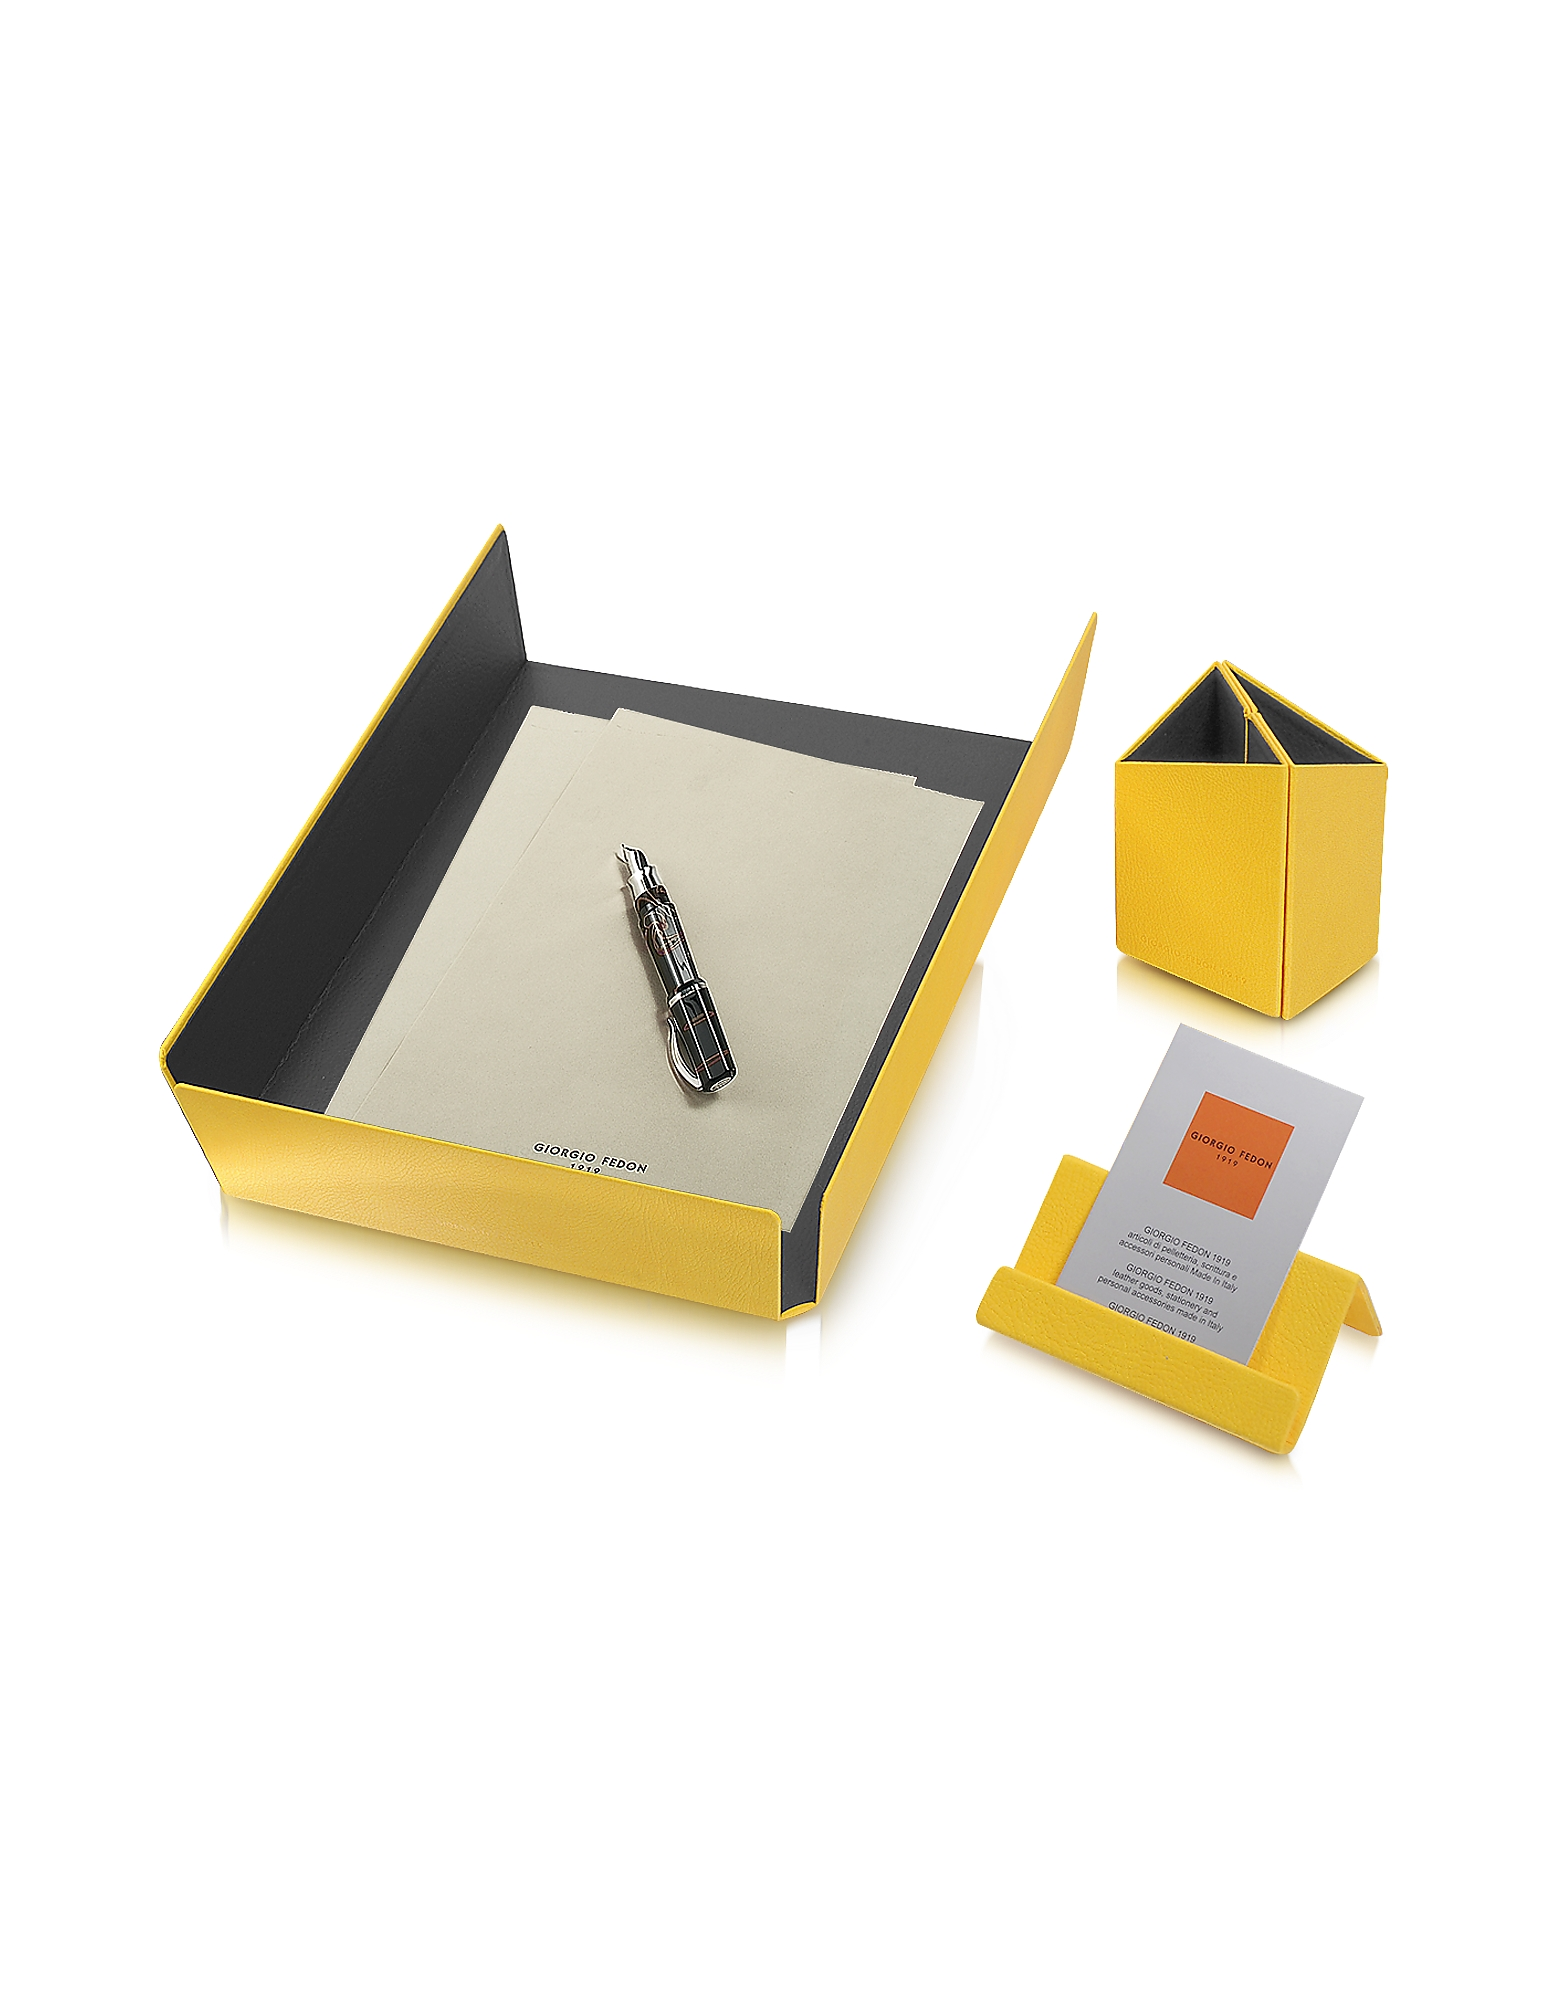 Giorgio Fedon 1919 Small Leather Goods, Charme - Yellow Desk Set